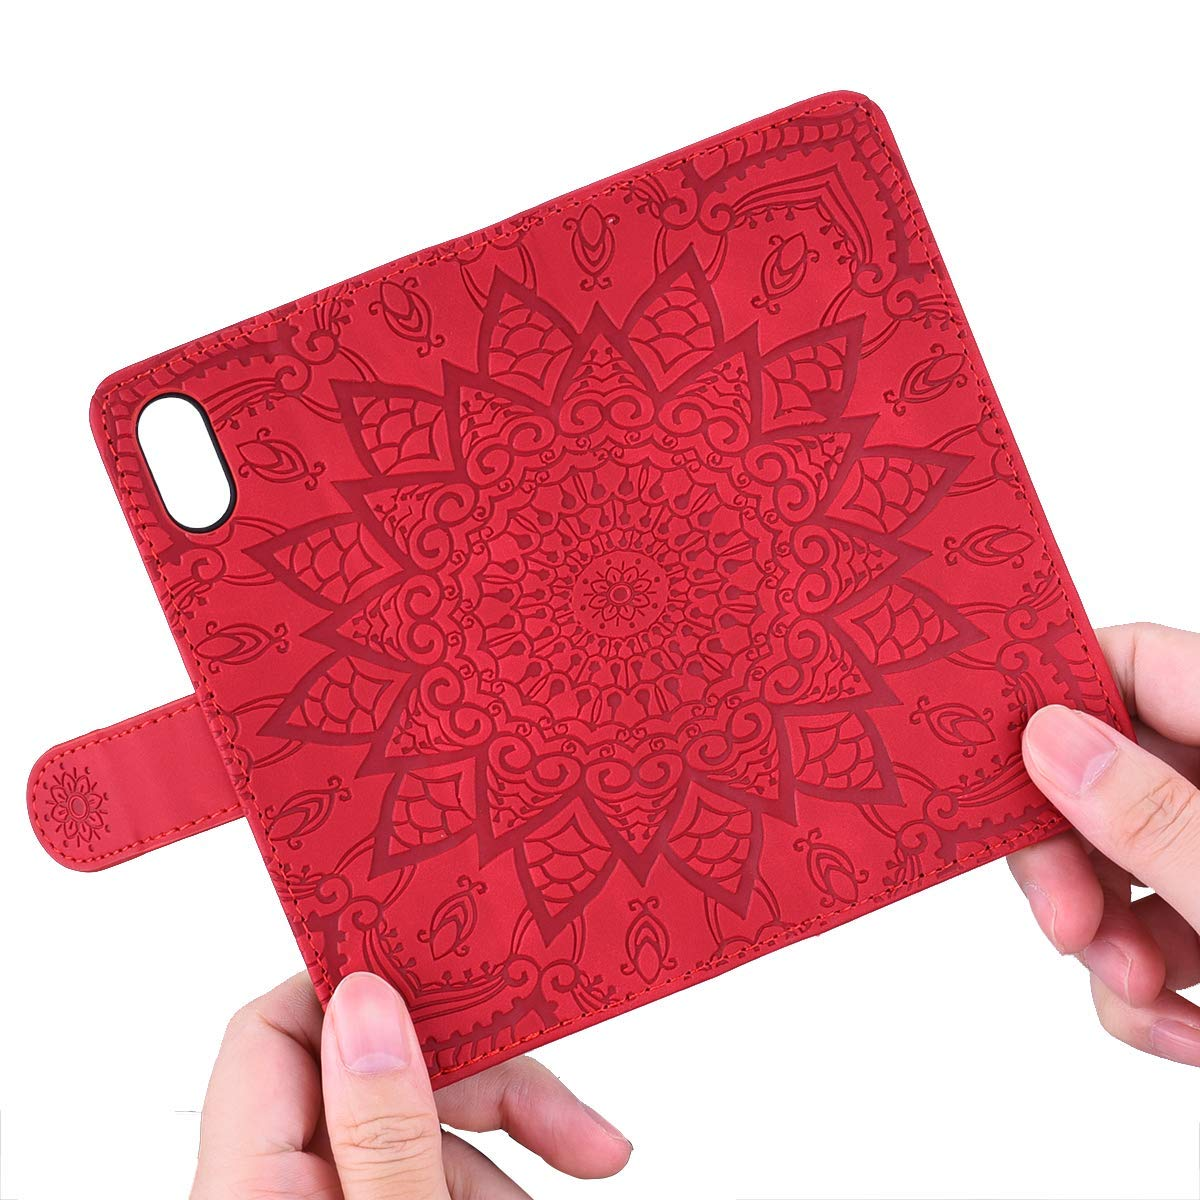 Jorisa Leather Wallet Case for iPhone 7 Plus//iPhone 8 Plus,Retro Embossed Mandala Flower Pattern Flip Stand Case with Card Holder Magnetic Closure Book Style Purse Phone Cover,Brown